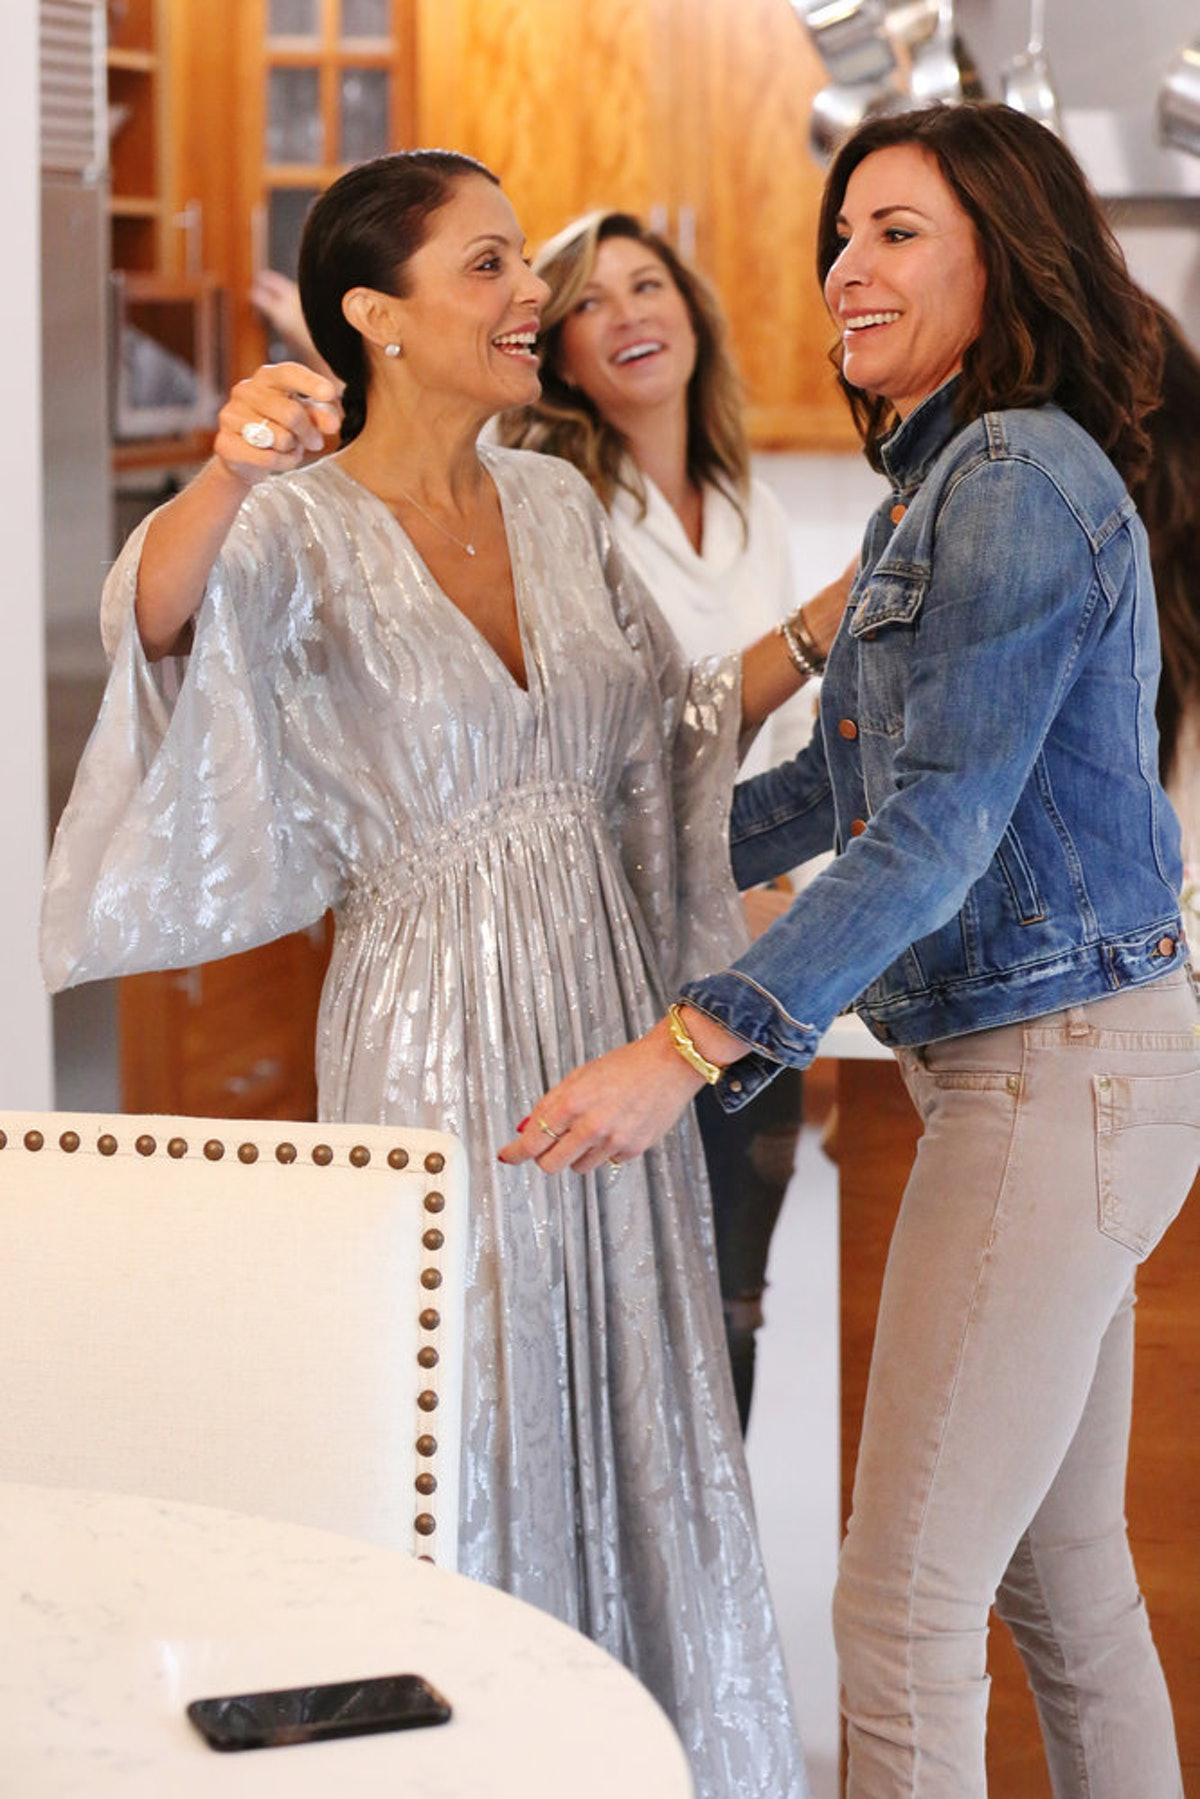 Are Bethenny & Luann Still Friends On 'Real Housewives Of New York City'? It's Been A Tough Season